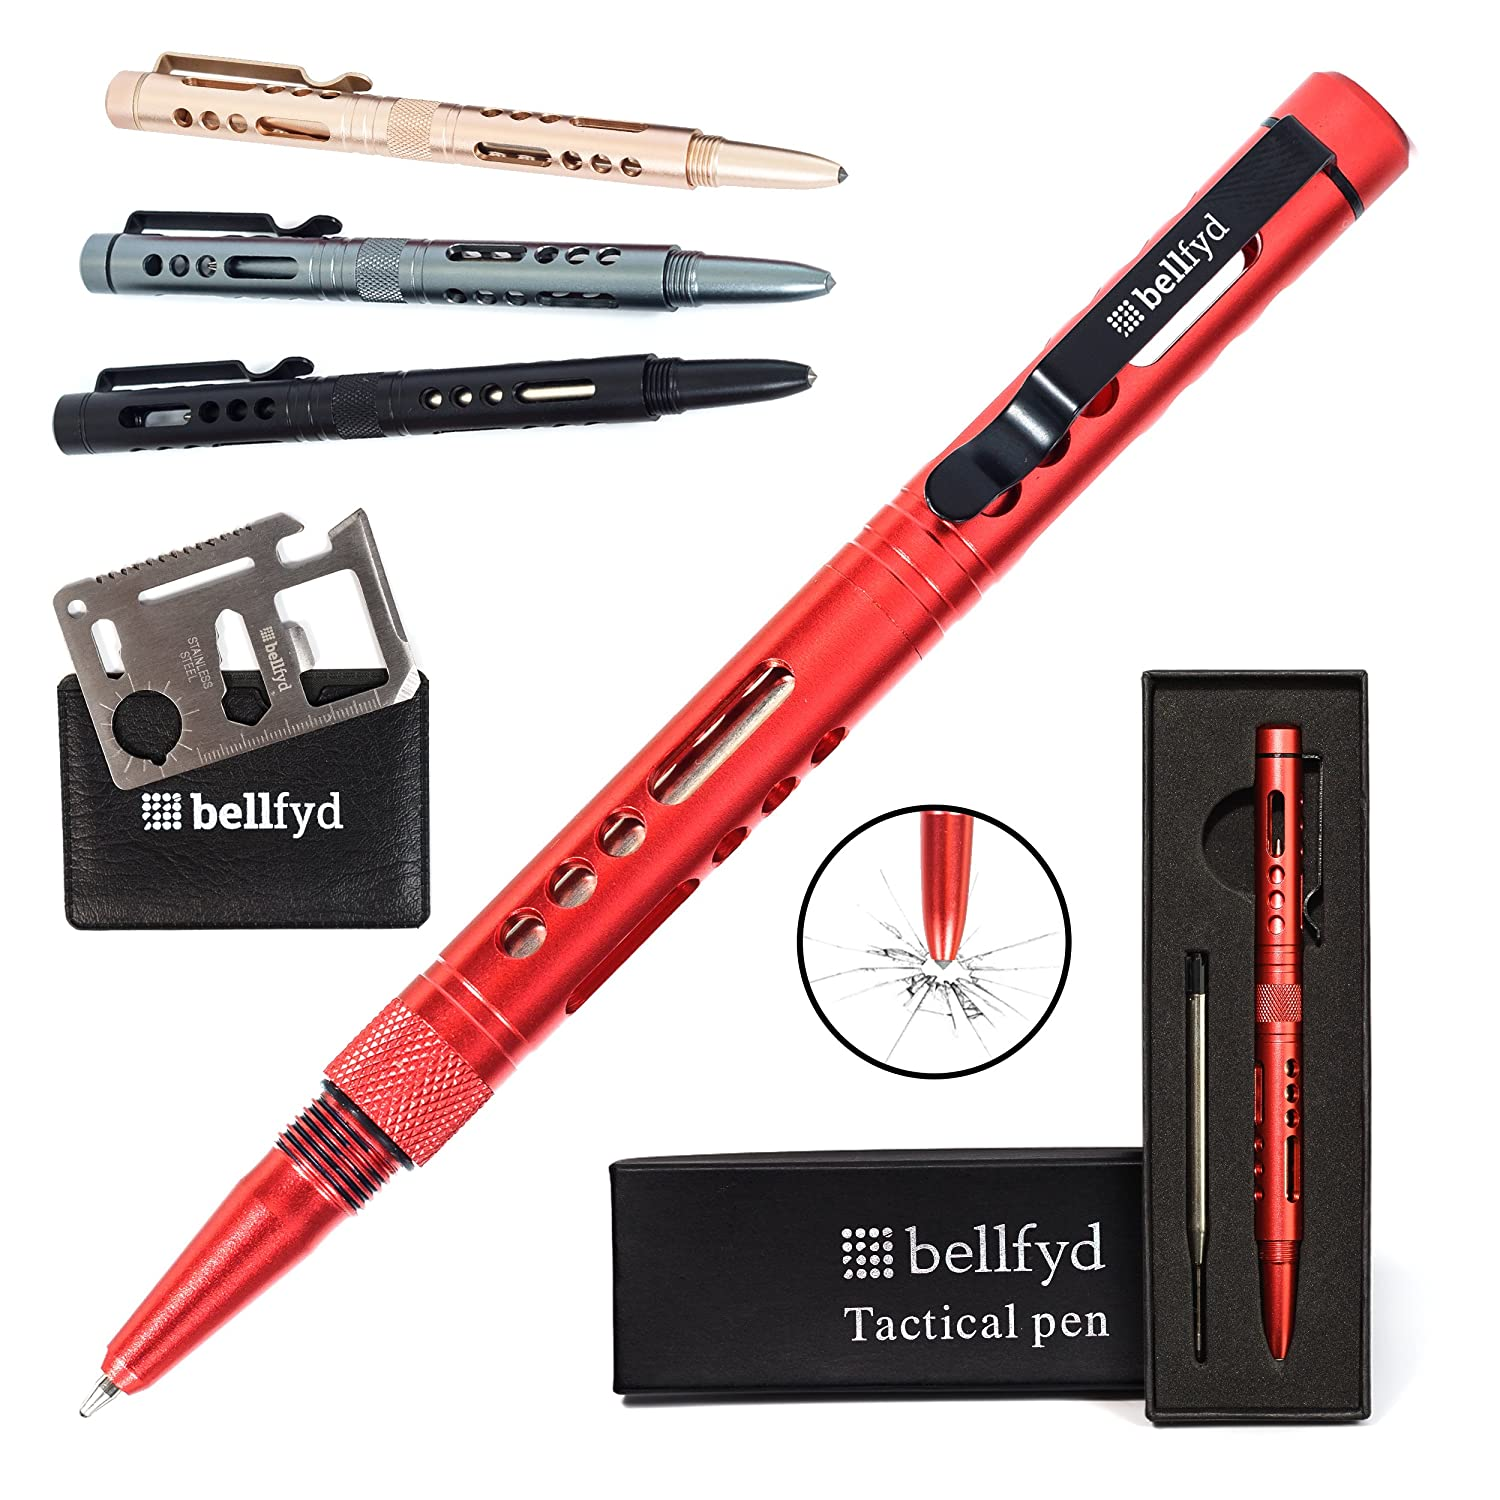 BellFyd Tactical Pen for Personal Protection and Self Defense - EDC Pen with Built-in Glass Breaker, LED Flashlight - Outdoors Survival Gear for Concealed Carry - Best Tactical Pens Holder Set XMS1306